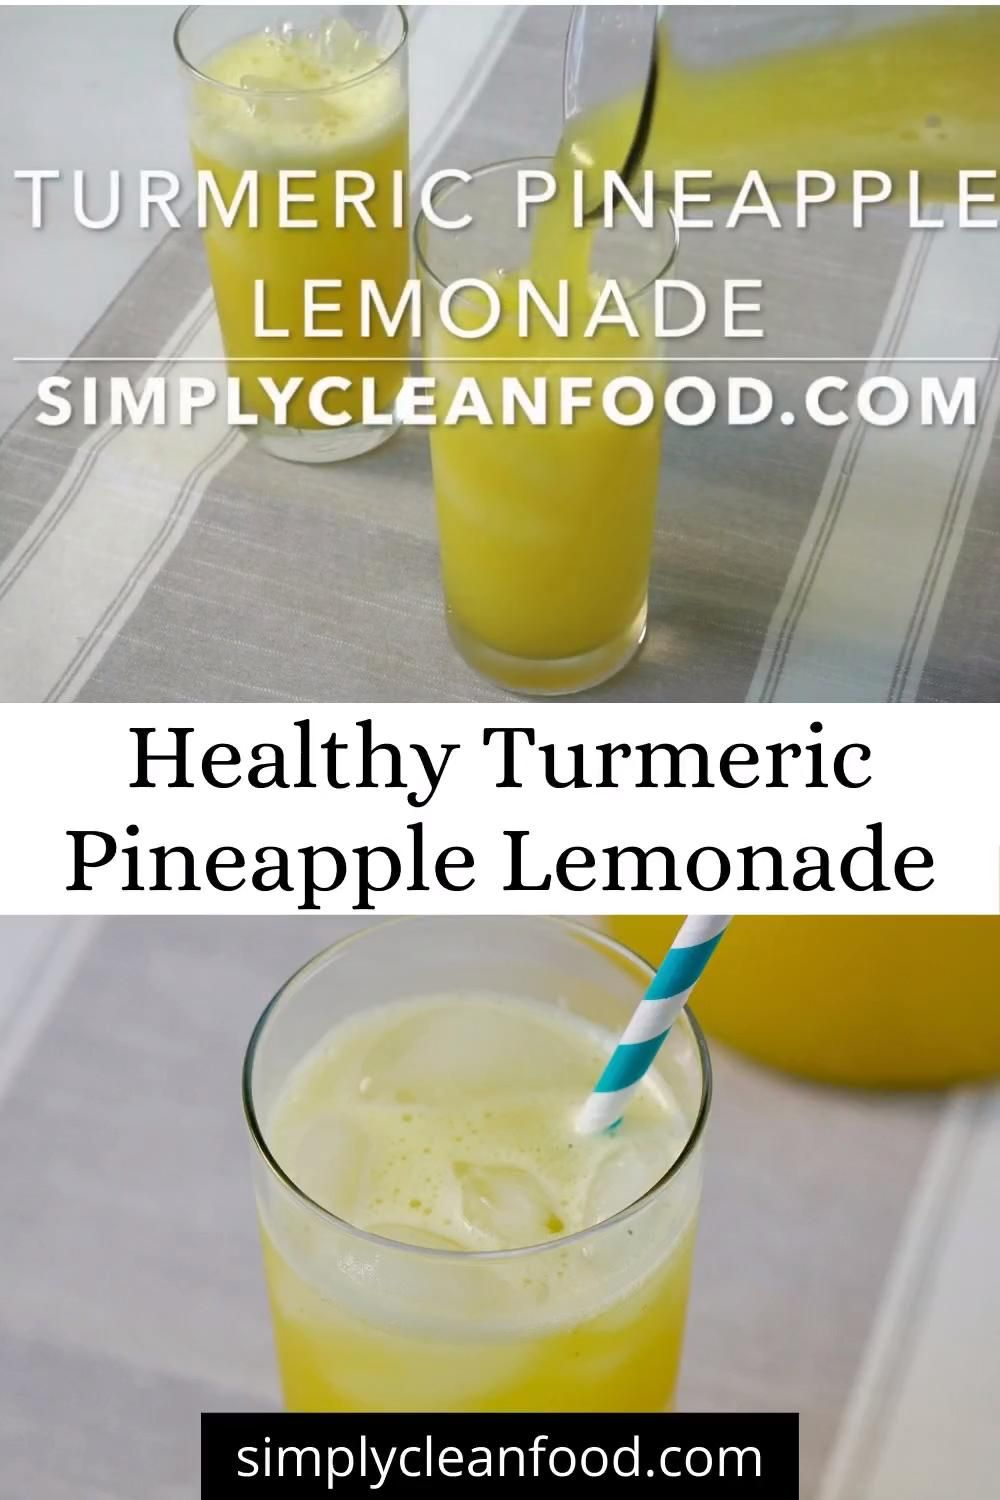 Photo of Healthy Turmeric Pineapple Lemonade